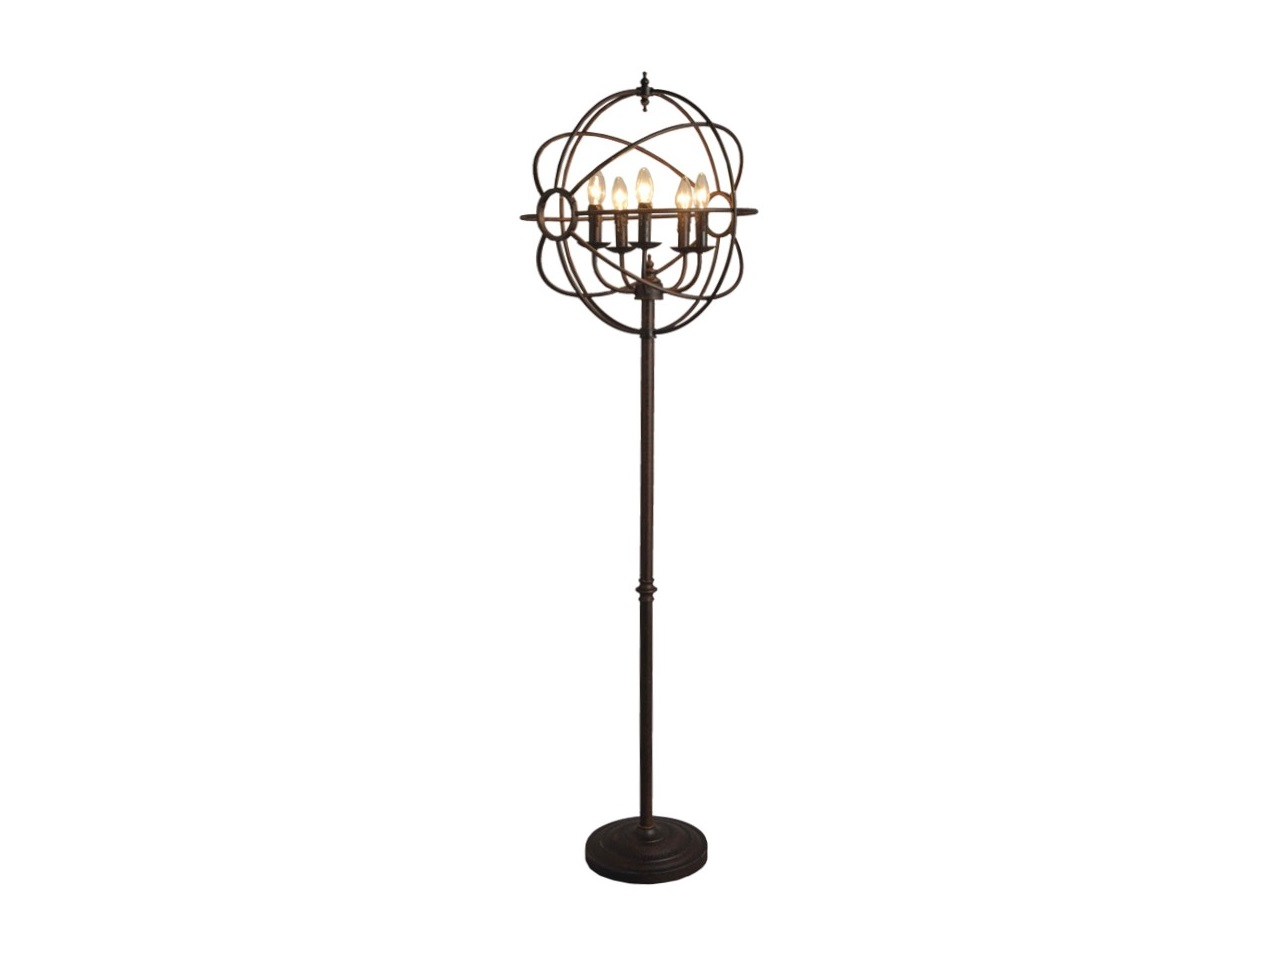 Напольная лампа Iron Orb Floor LampТоршеры<br>&amp;lt;div&amp;gt;Вид цоколя: E14&amp;lt;/div&amp;gt;&amp;lt;div&amp;gt;Мощность лампы: 80&amp;lt;/div&amp;gt;&amp;lt;div&amp;gt;Количество ламп: 5&amp;lt;/div&amp;gt;<br><br>Material: Металл<br>Width см: 50<br>Depth см: 50<br>Height см: 165